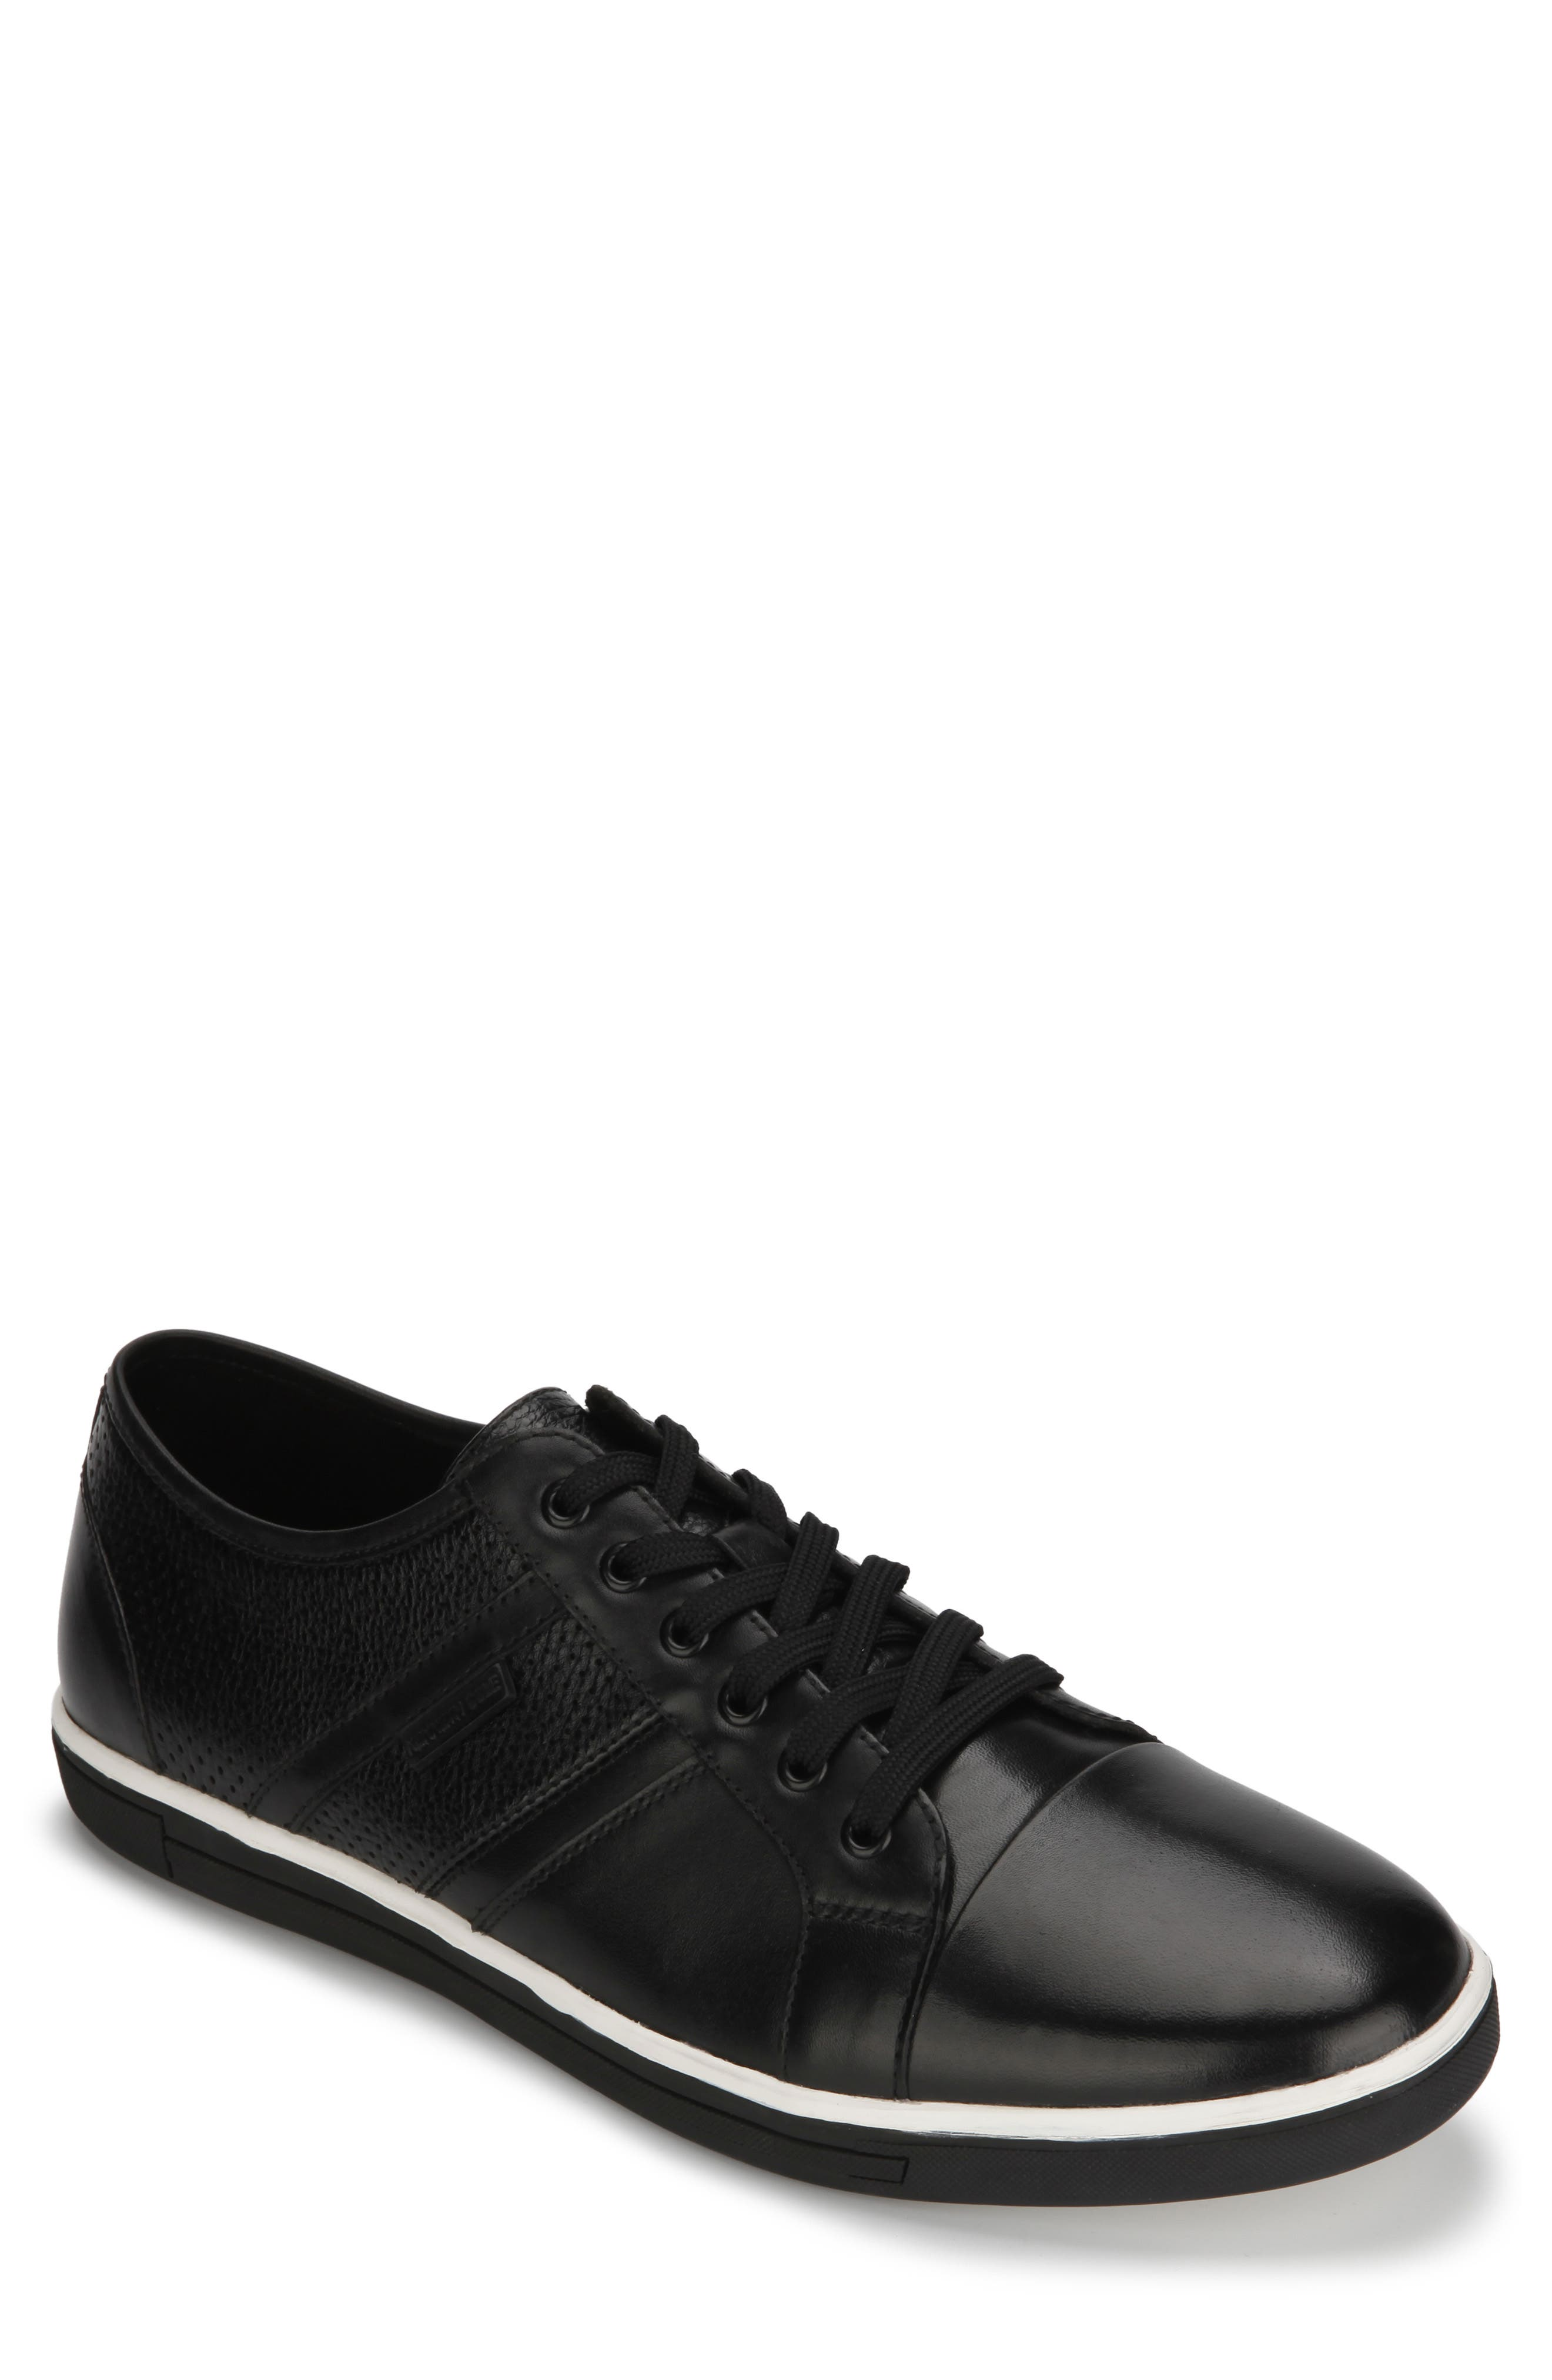 KENNETH COLE NEW YORK, Initial Step Sneaker, Main thumbnail 1, color, BLACK LEATHER